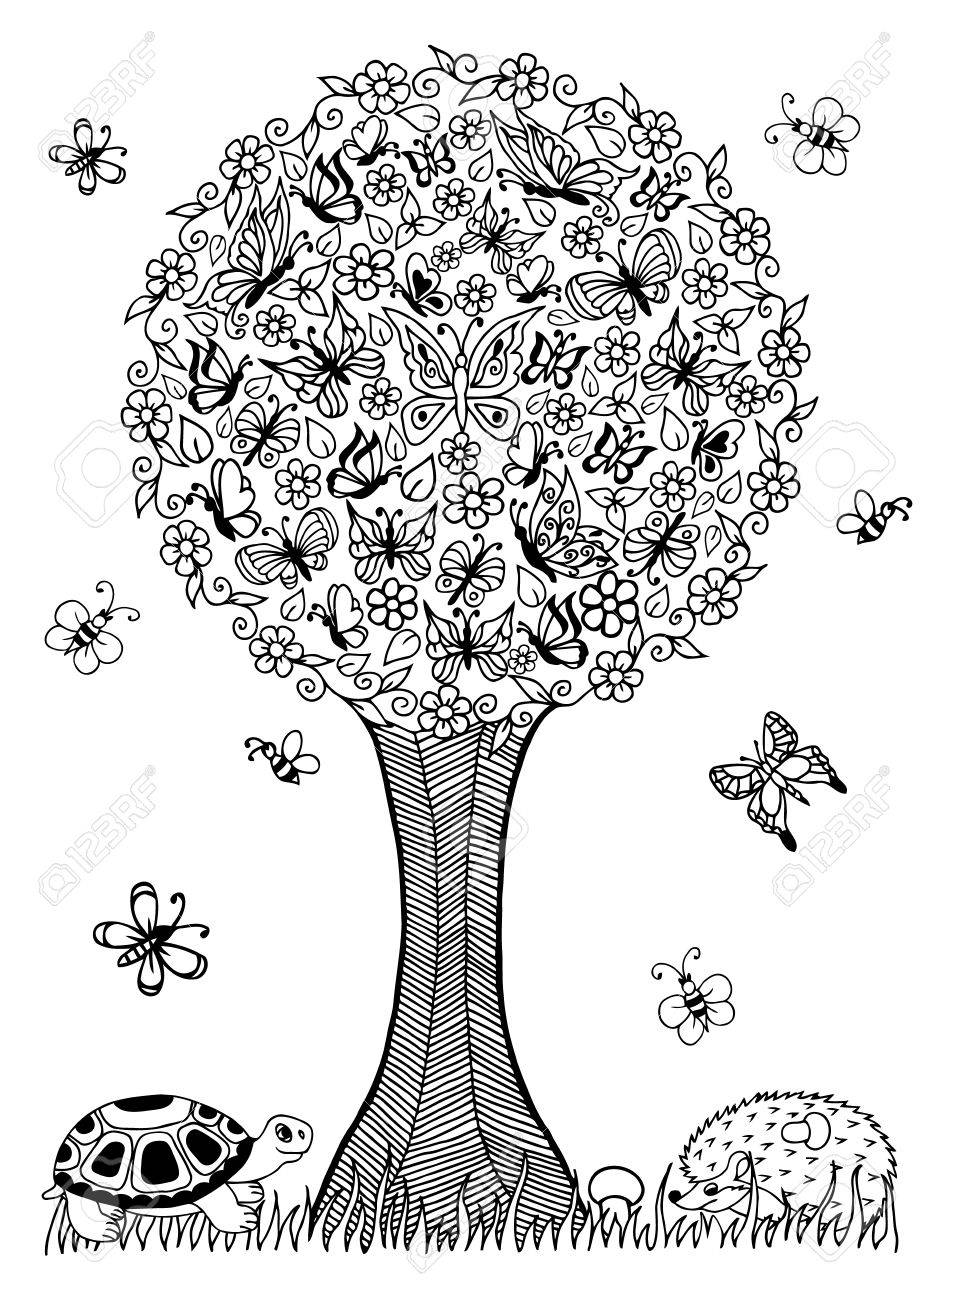 Coloriage Arbre Anti Stress.Illustration Tortue Et Le Herisson Sous Un Arbre De Papillons